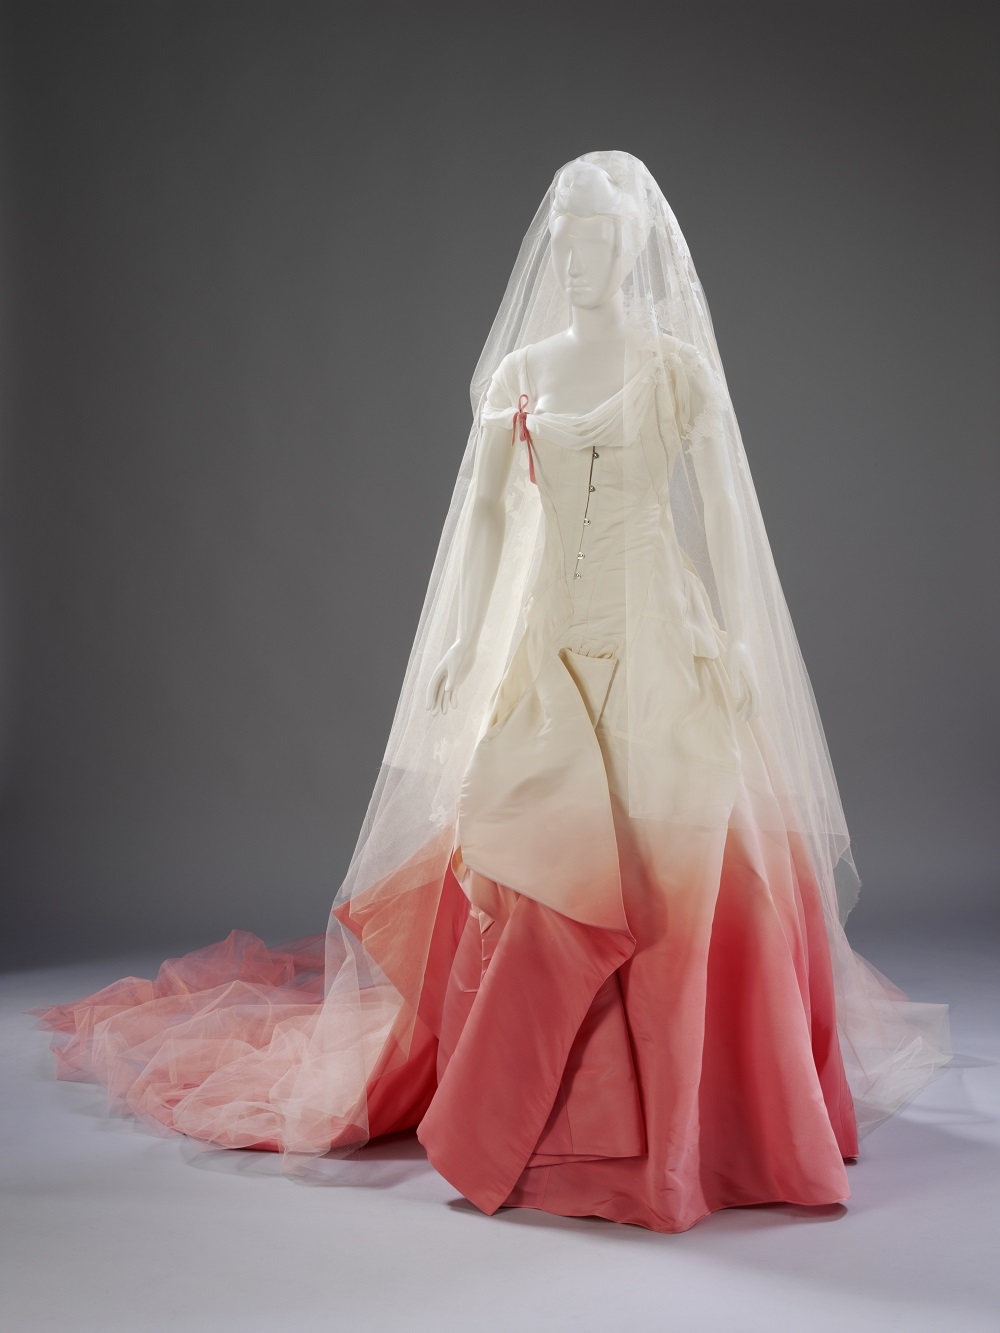 Wedding dress designed by john galliano worn by gwen stefani 2002